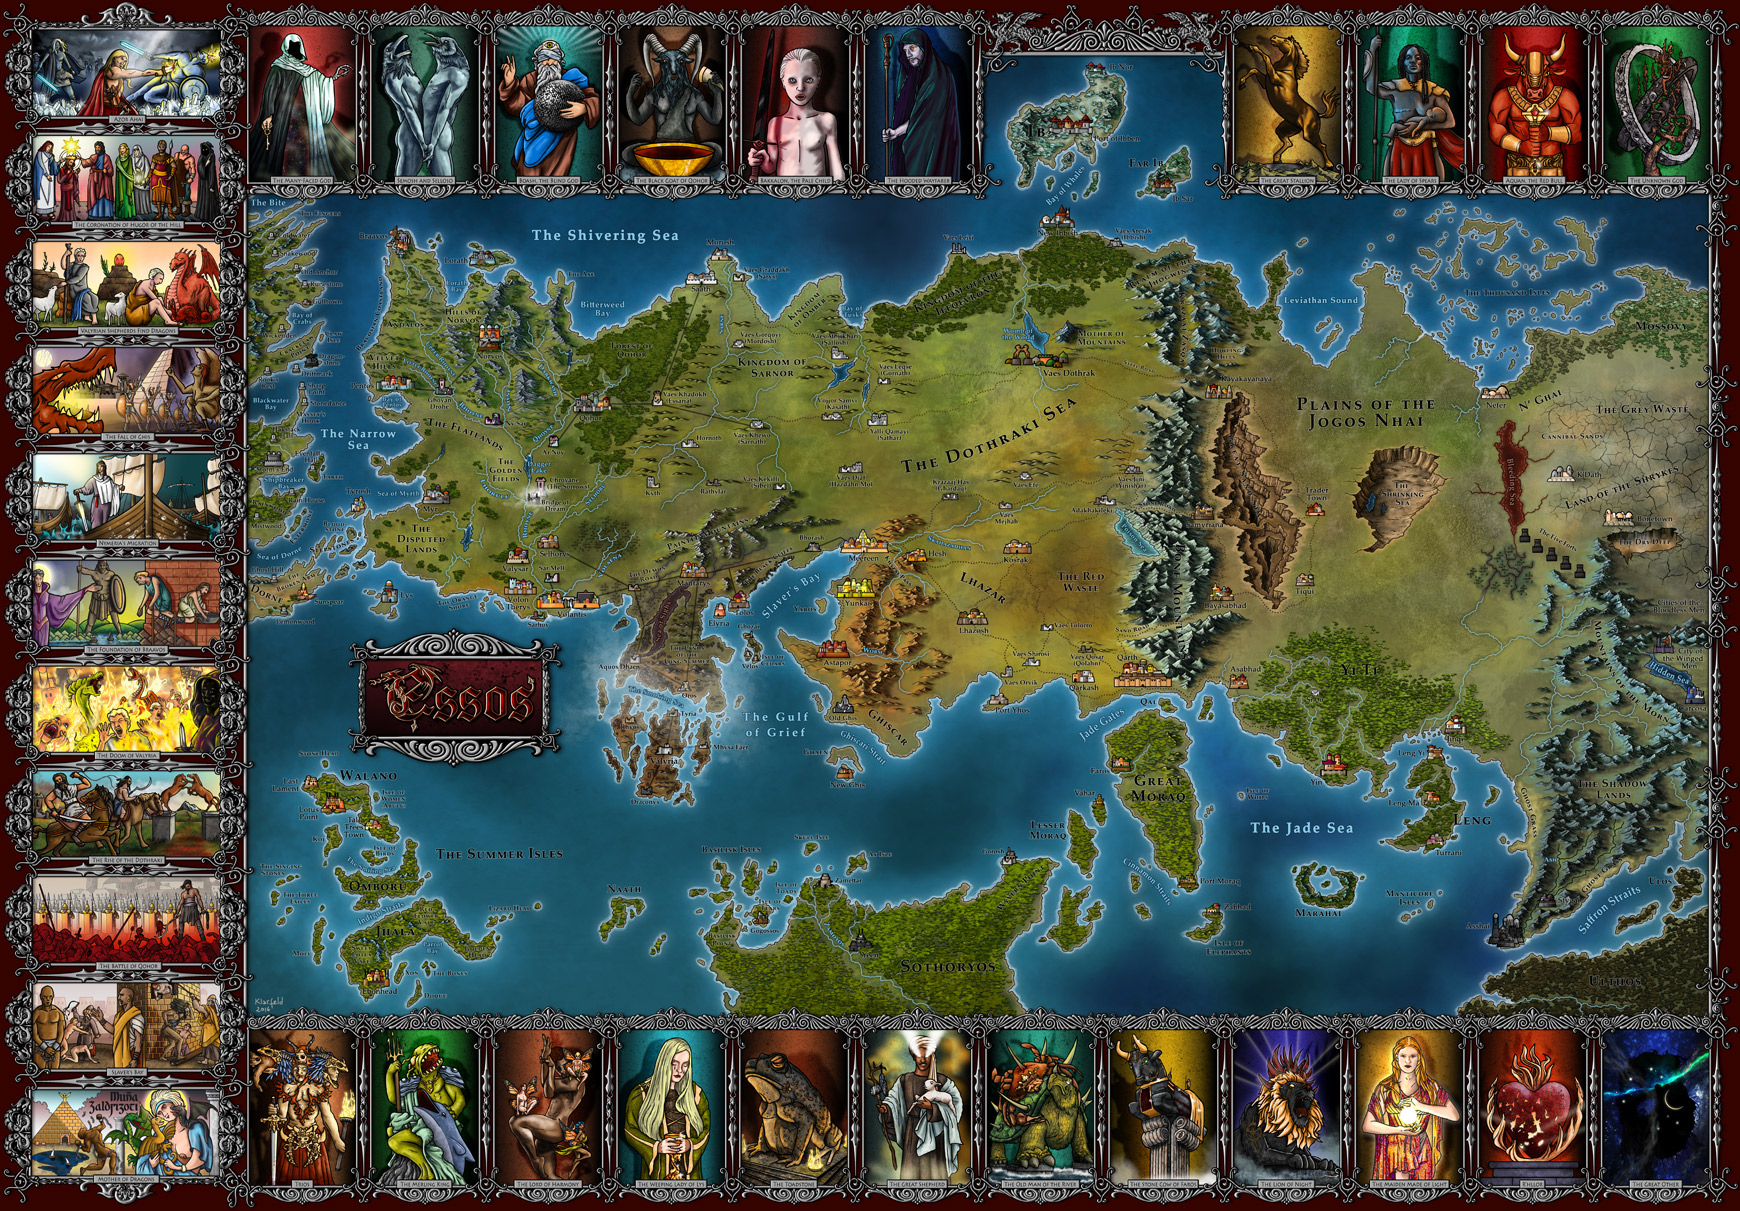 Essos | Klaradox on game of thrones yi ti, game of thrones wallpaper 1280x1024, game of thrones poster, official map of essos, game of thrones sothoryos, game of thrones maps pdf, hd map of westeros essos, game of thrones family tree house, game of thrones king's landing minecraft, game of thrones all books, game of thrones 4d puzzle, game of thrones maps and families, game of thrones city braavos, game of thrones banners, game of thrones qarth, game of thrones house tyrell, game of thrones diagram, game of thrones maps hbo,